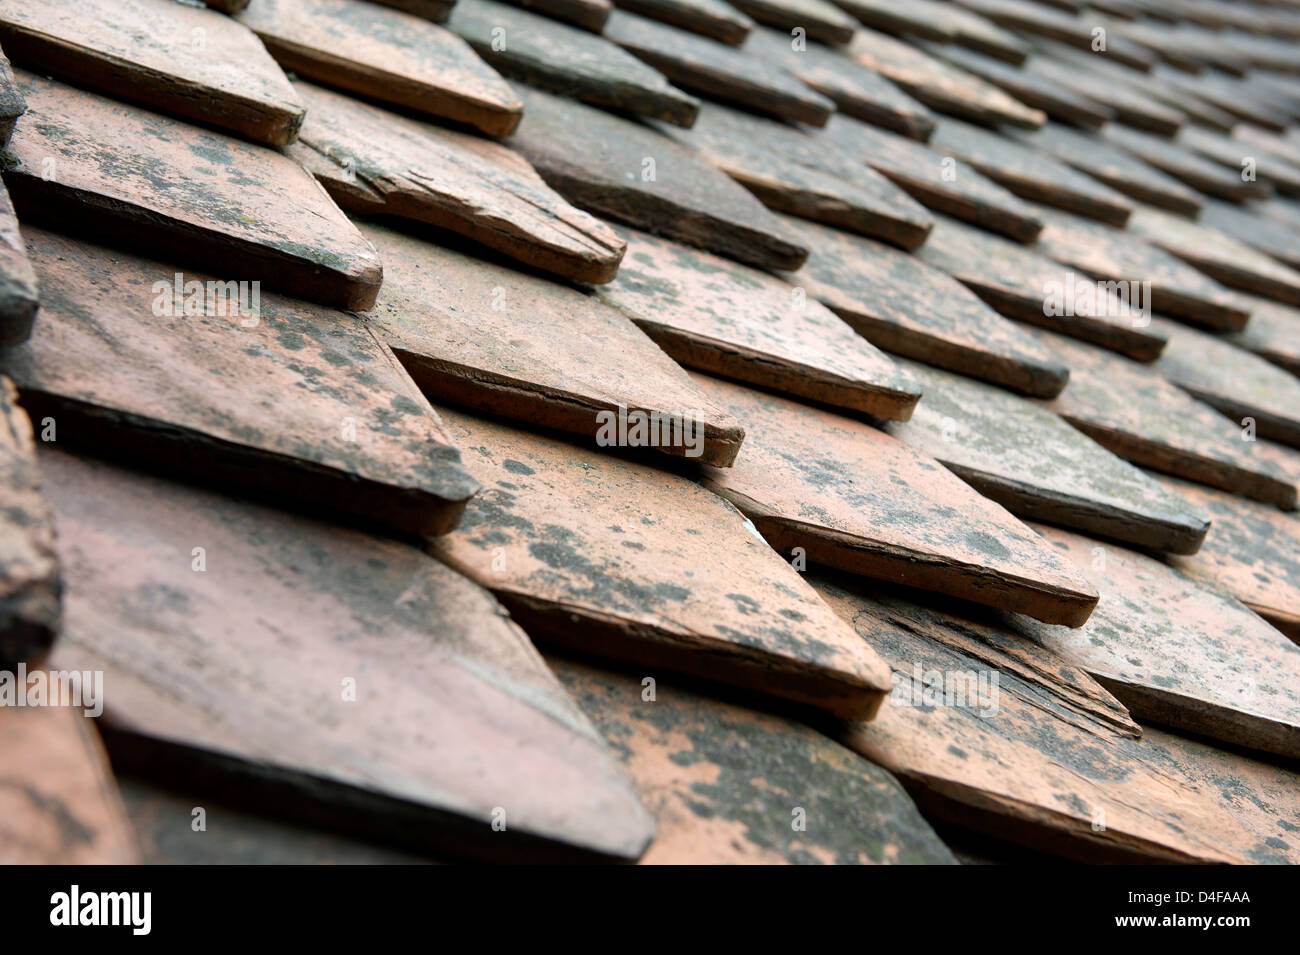 Gothic Tiles on the roof of Bran Castle also known as Dracula's Castle in Transylvania, Romania - Stock Image